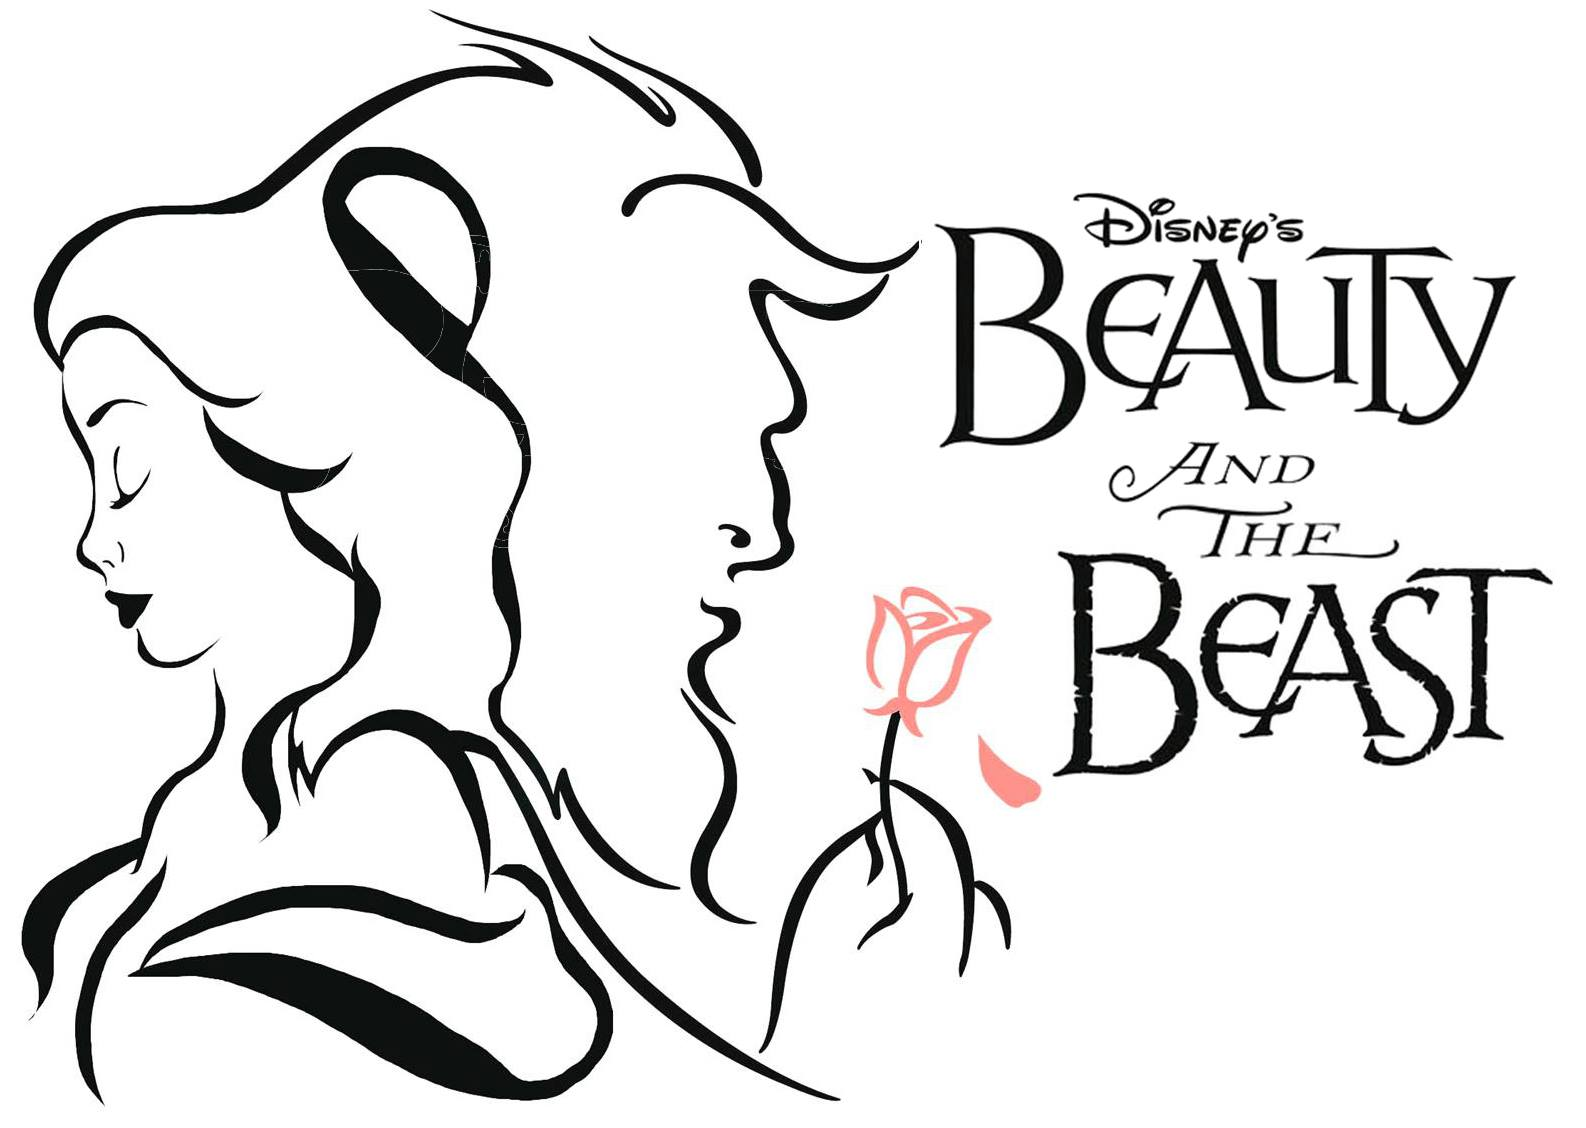 Beauty and the beast black white clipart 4 clipart station.